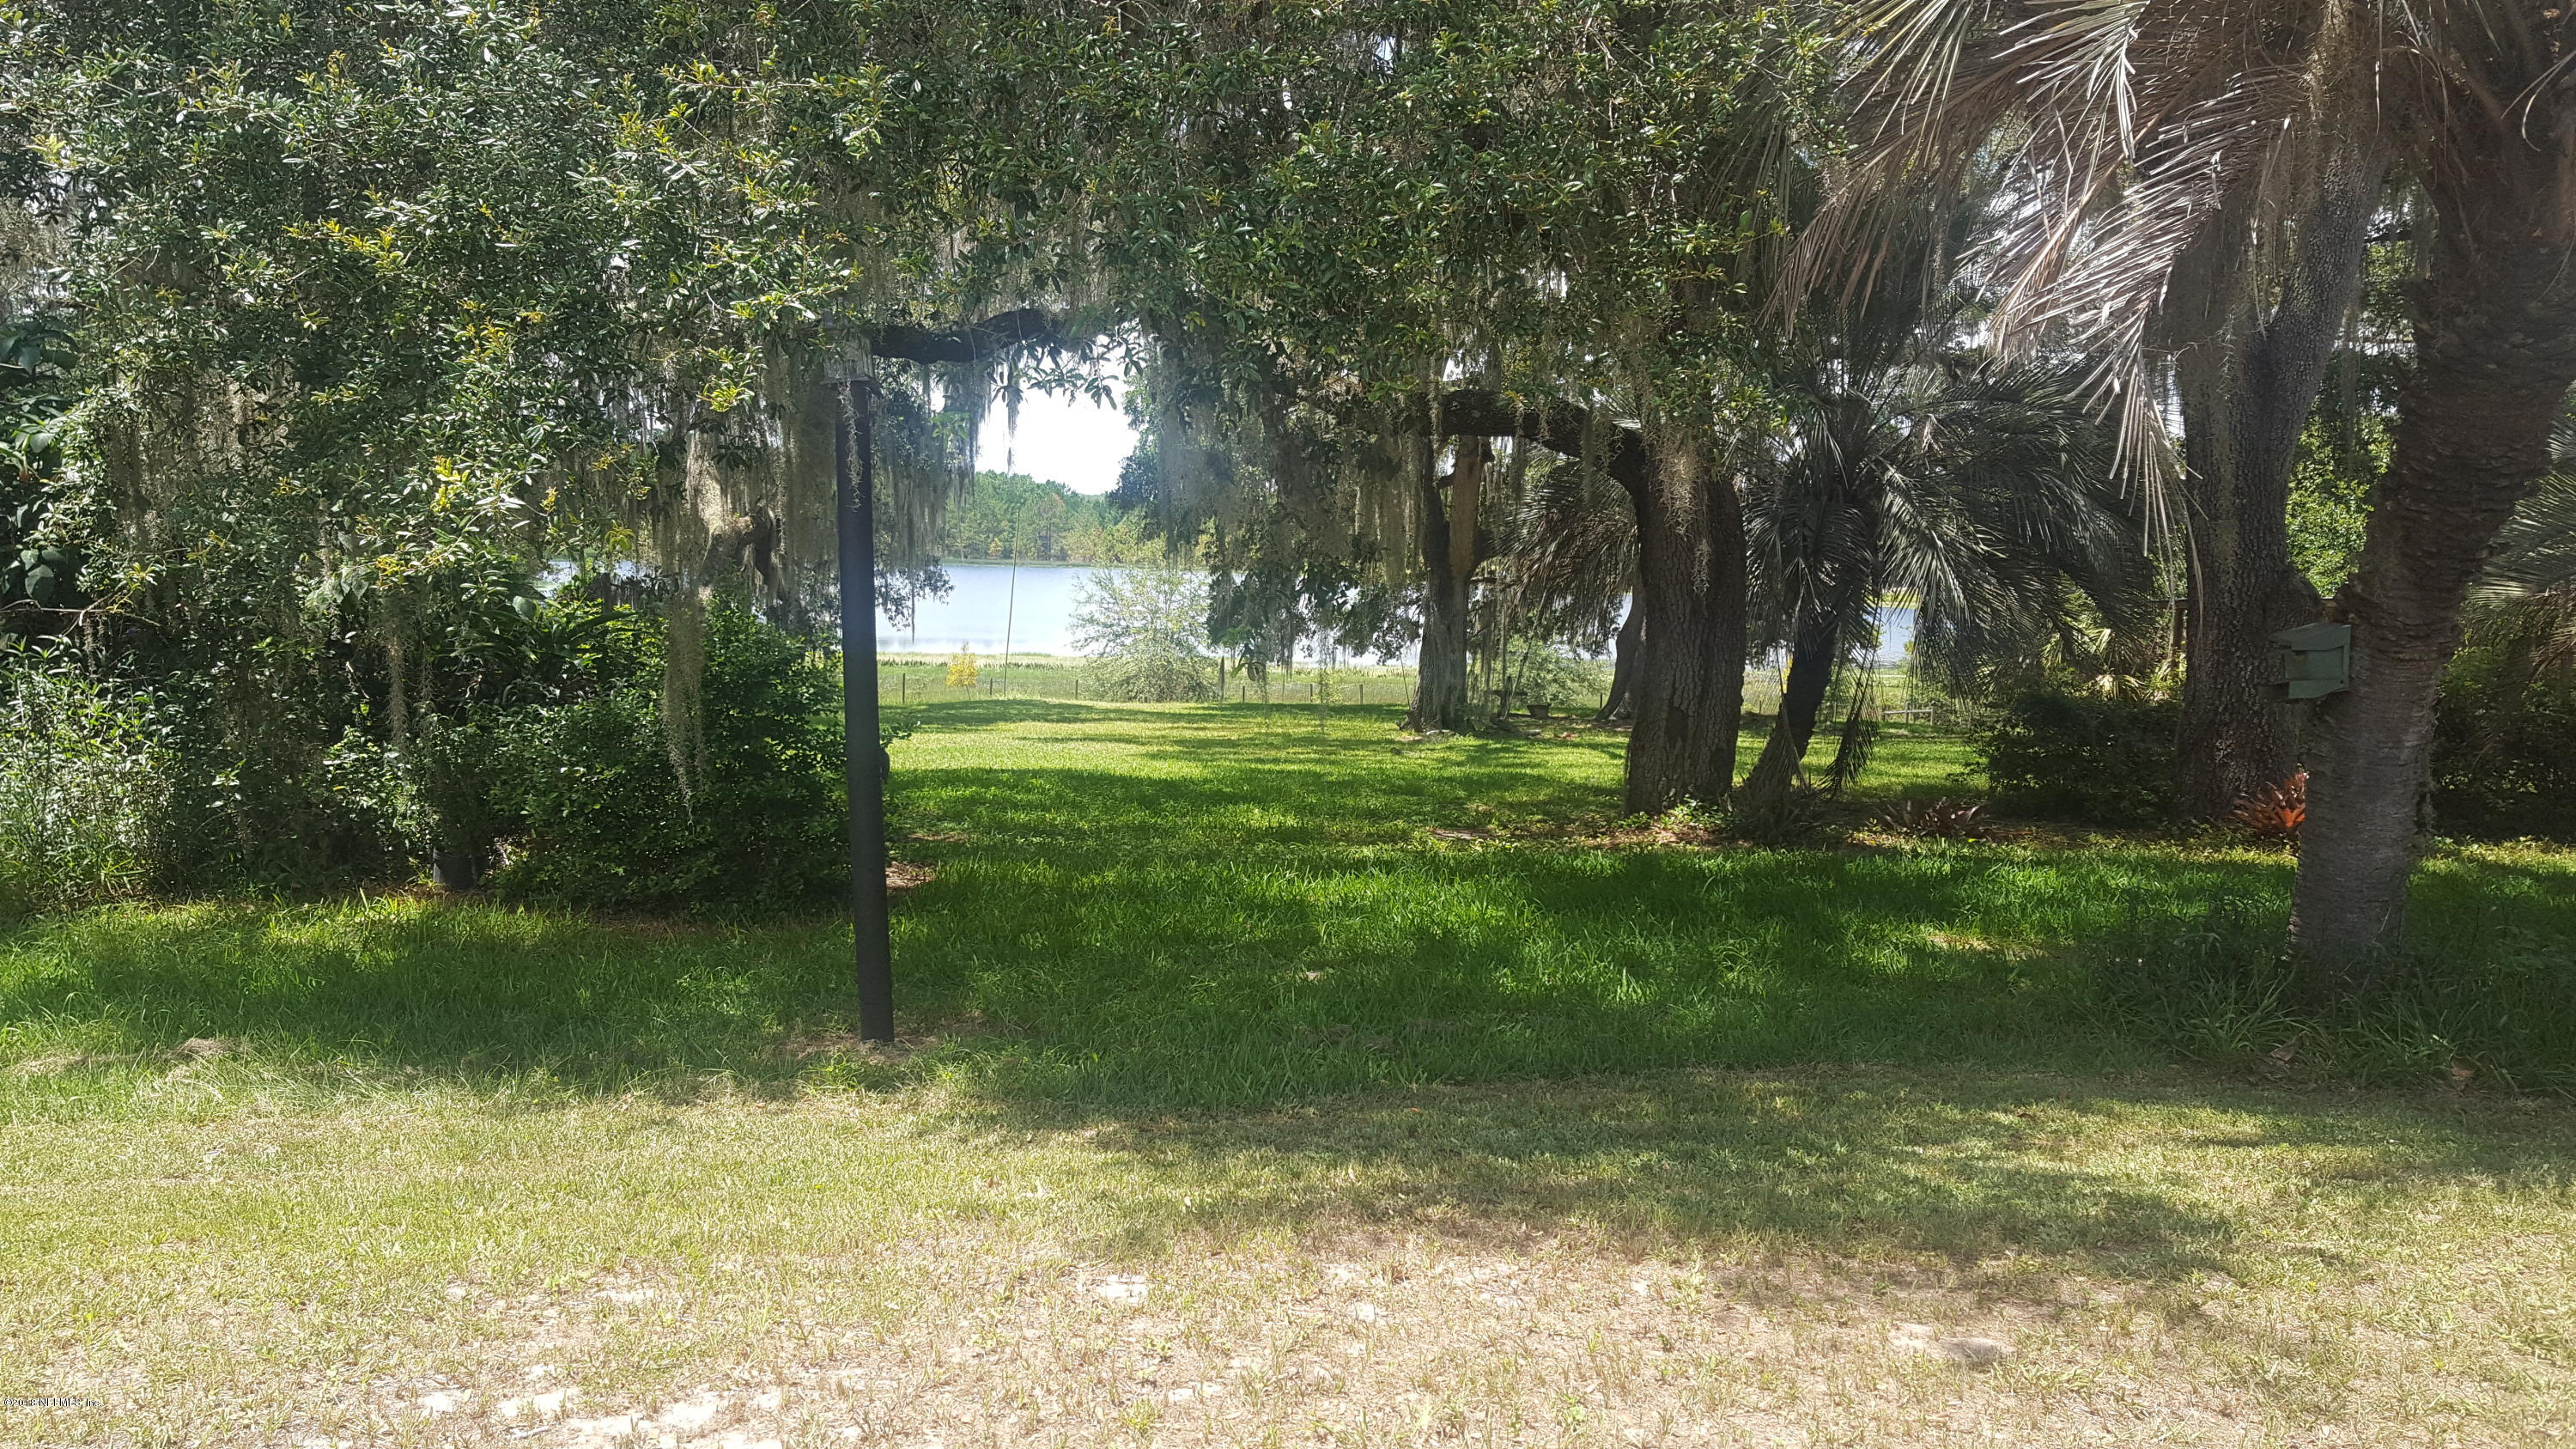 165 ASHLEY LAKE, MELROSE, FLORIDA 32666, 6 Bedrooms Bedrooms, ,6 BathroomsBathrooms,Residential - single family,For sale,ASHLEY LAKE,954073